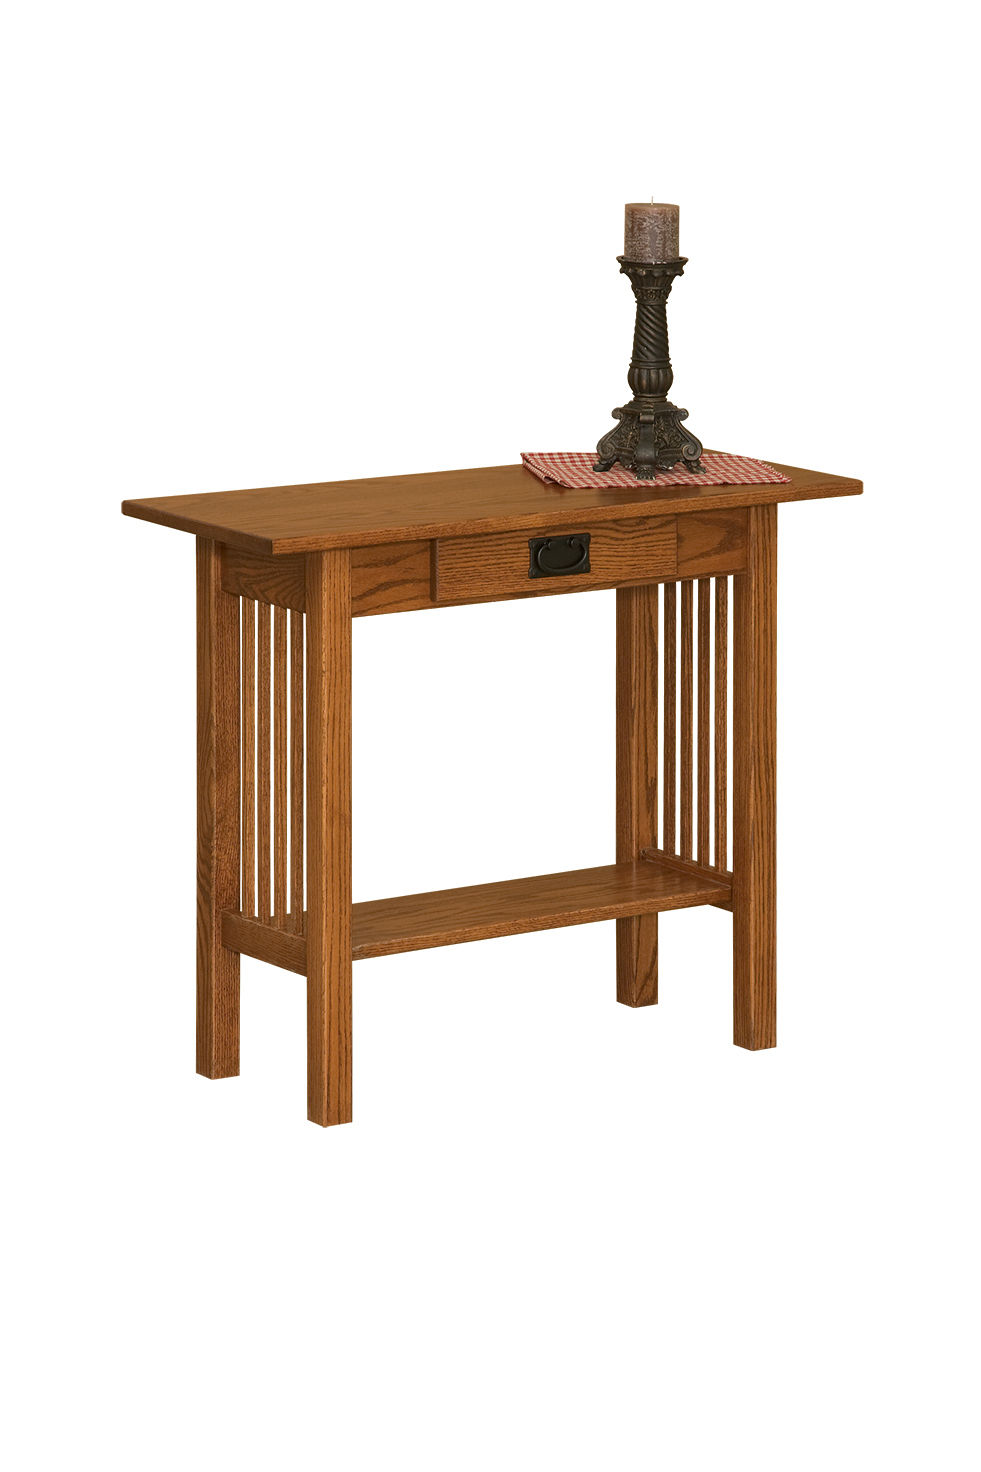 Photo of: AW Console Table